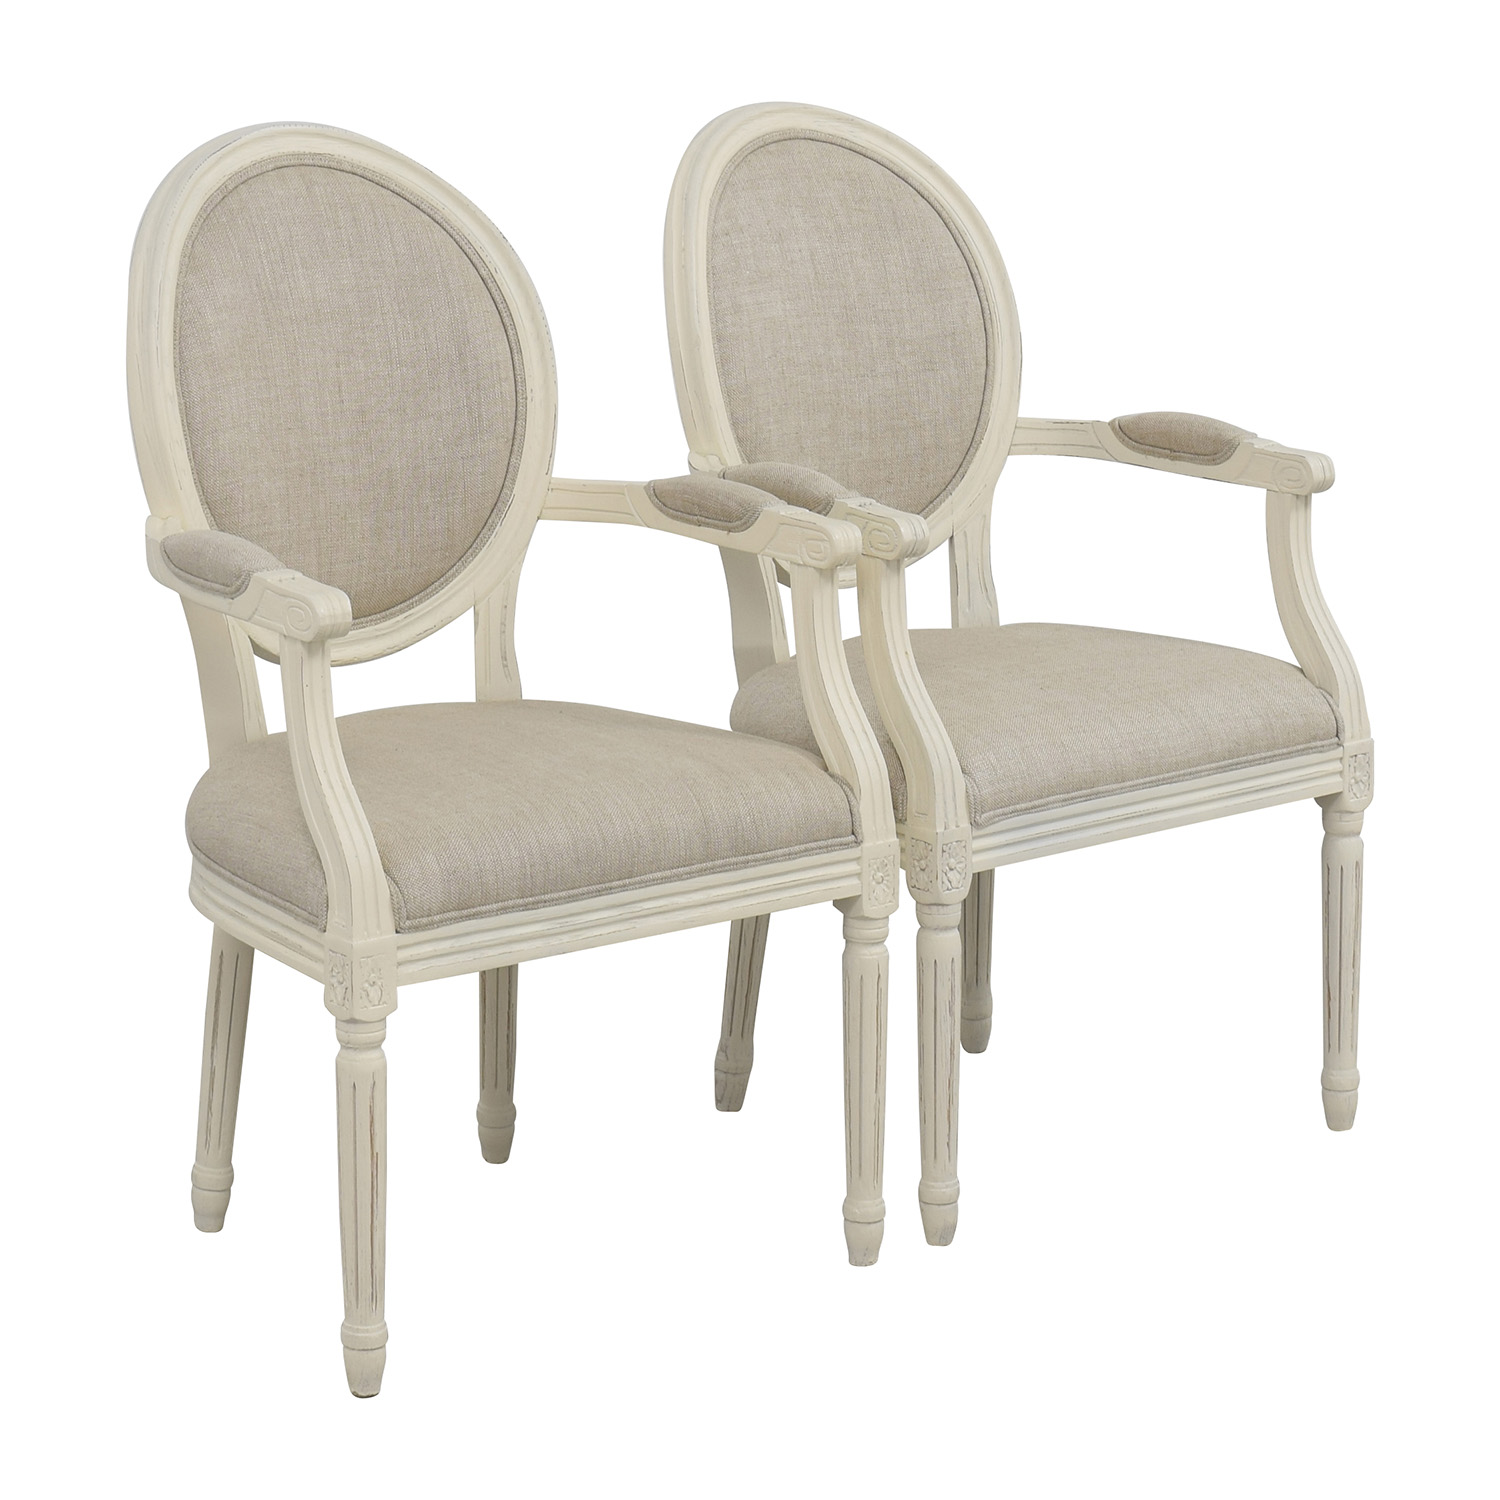 Restoration Hardware Restoration Hardware Beige French Chairs nj